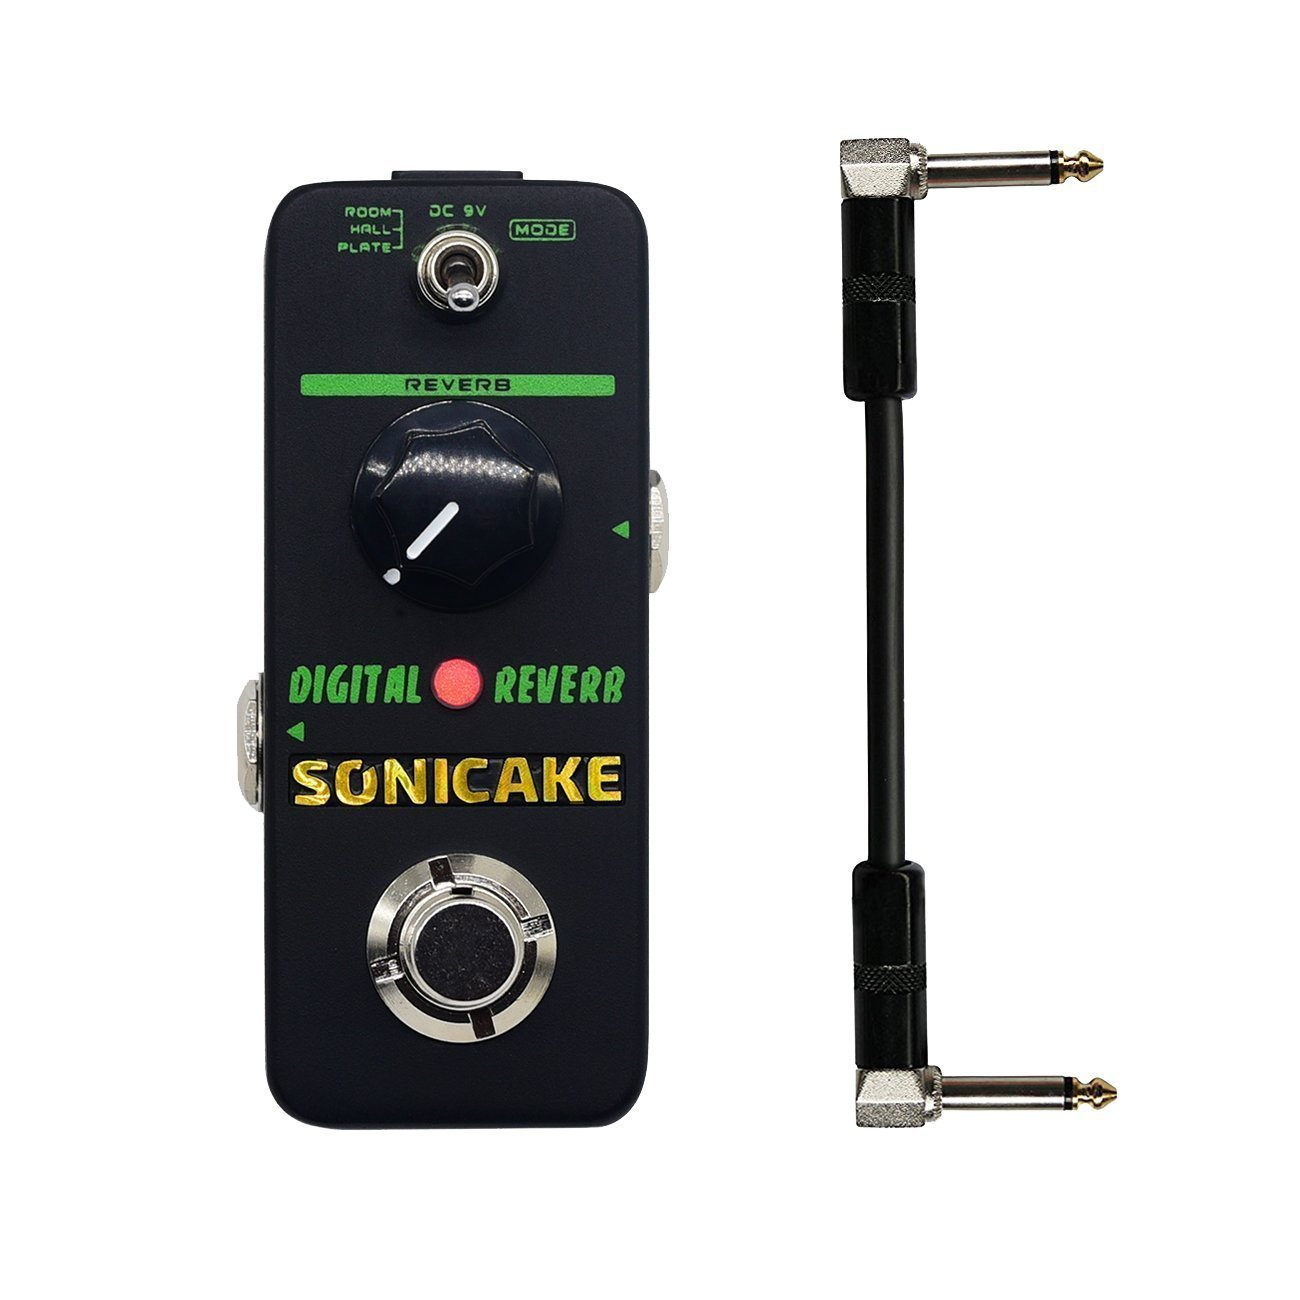 SONICAKE Digital Reverb Mini Guitar Effects Pedal True Bypass by SONICAKE